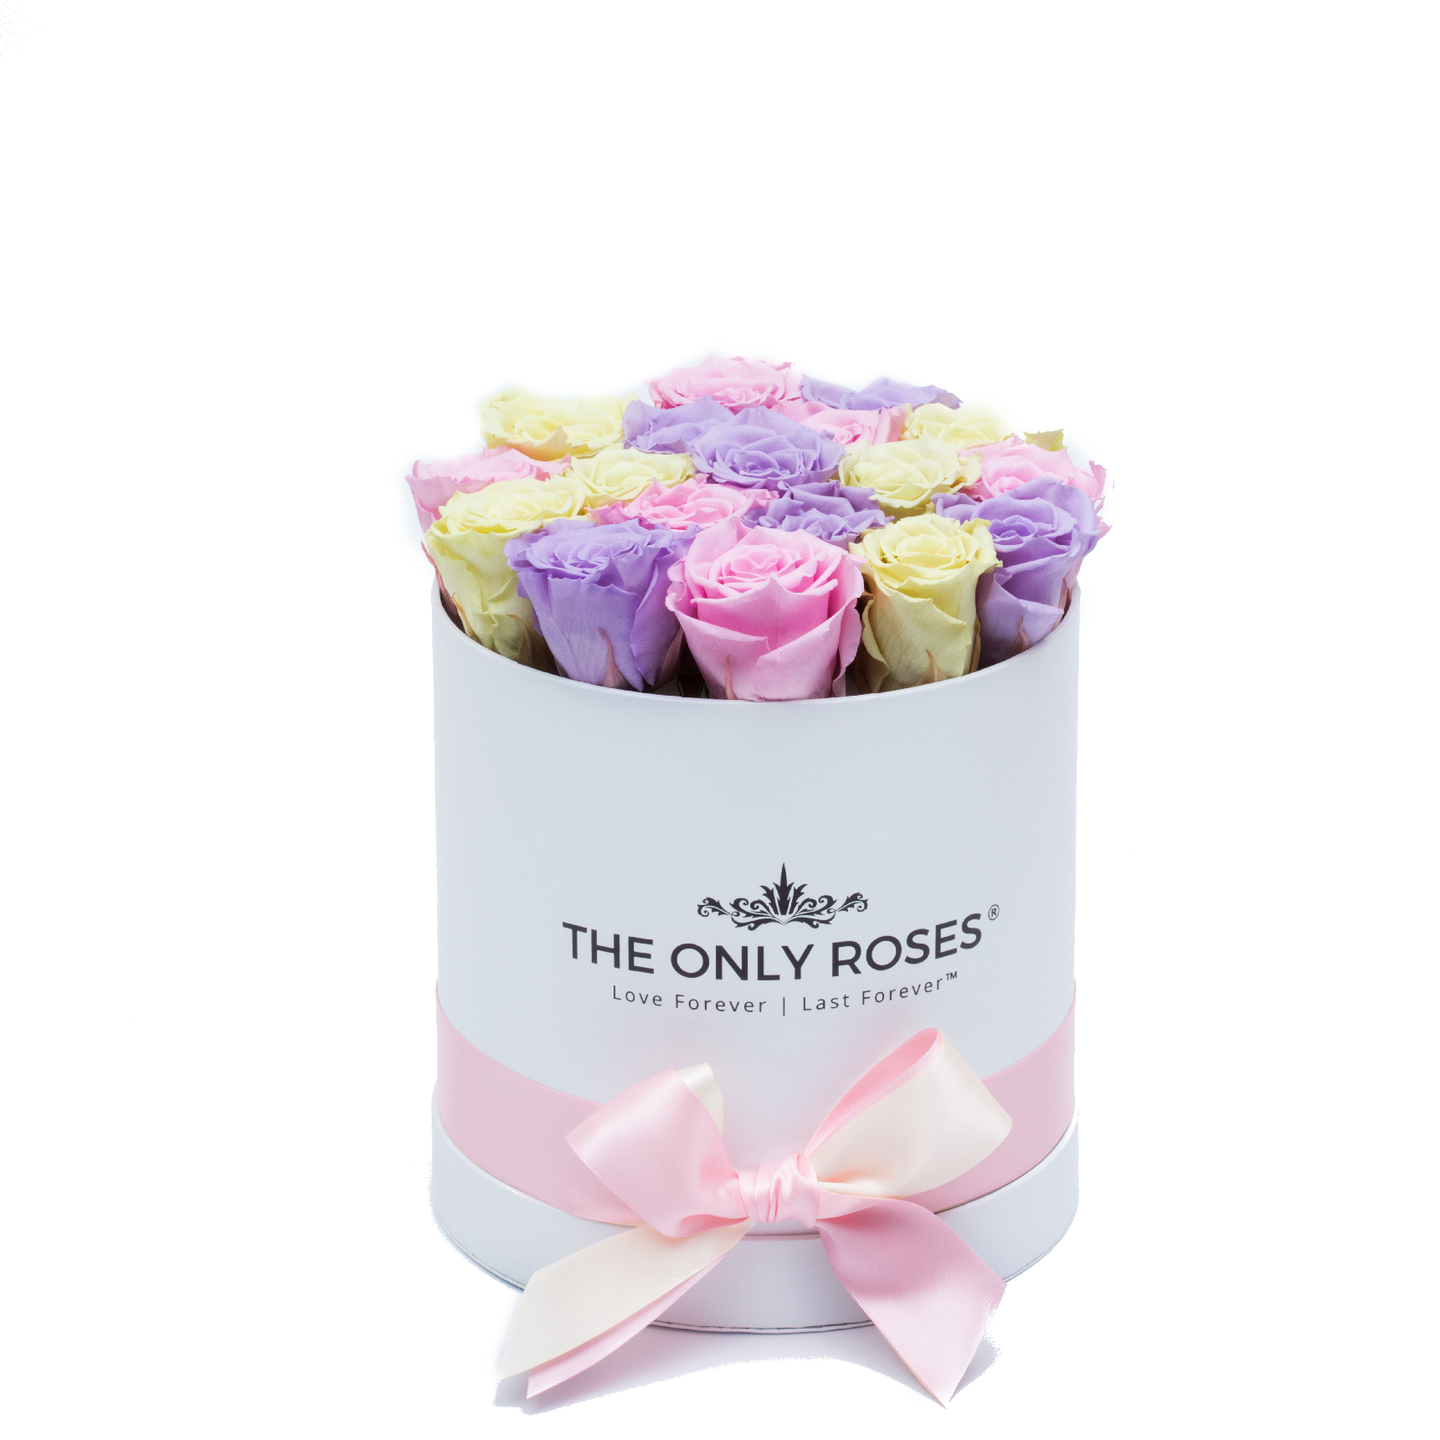 Candy Preserved Roses | Small Round White Huggy Rose Box - The Only Roses